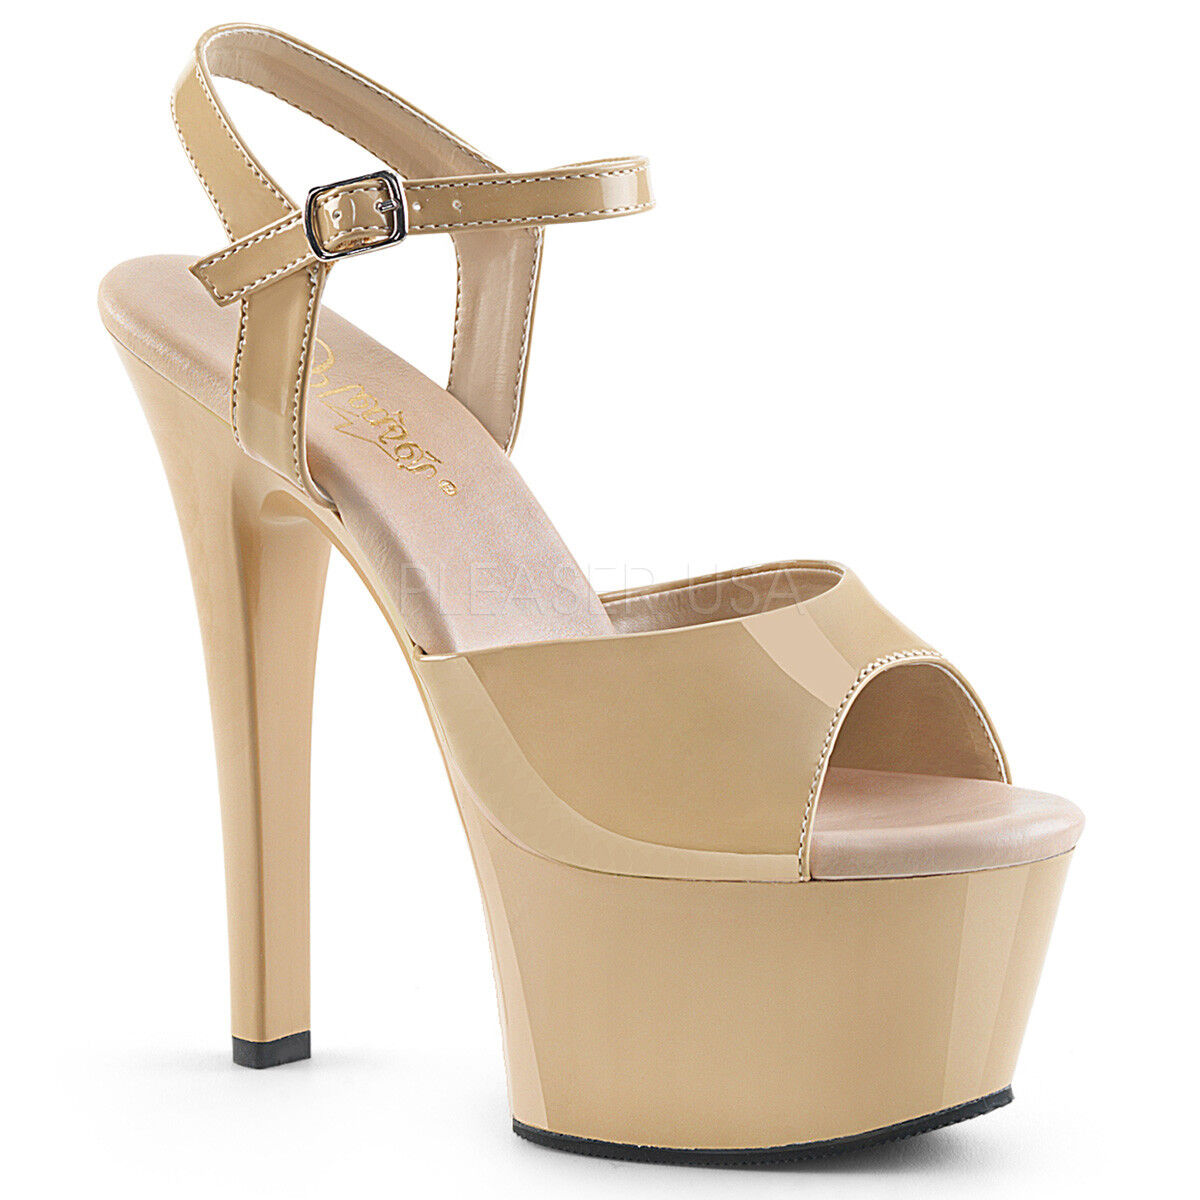 Nude Cream Basic High Heels Sandals Pageant Prom Womans shoes size 5 6 7 8 9 10